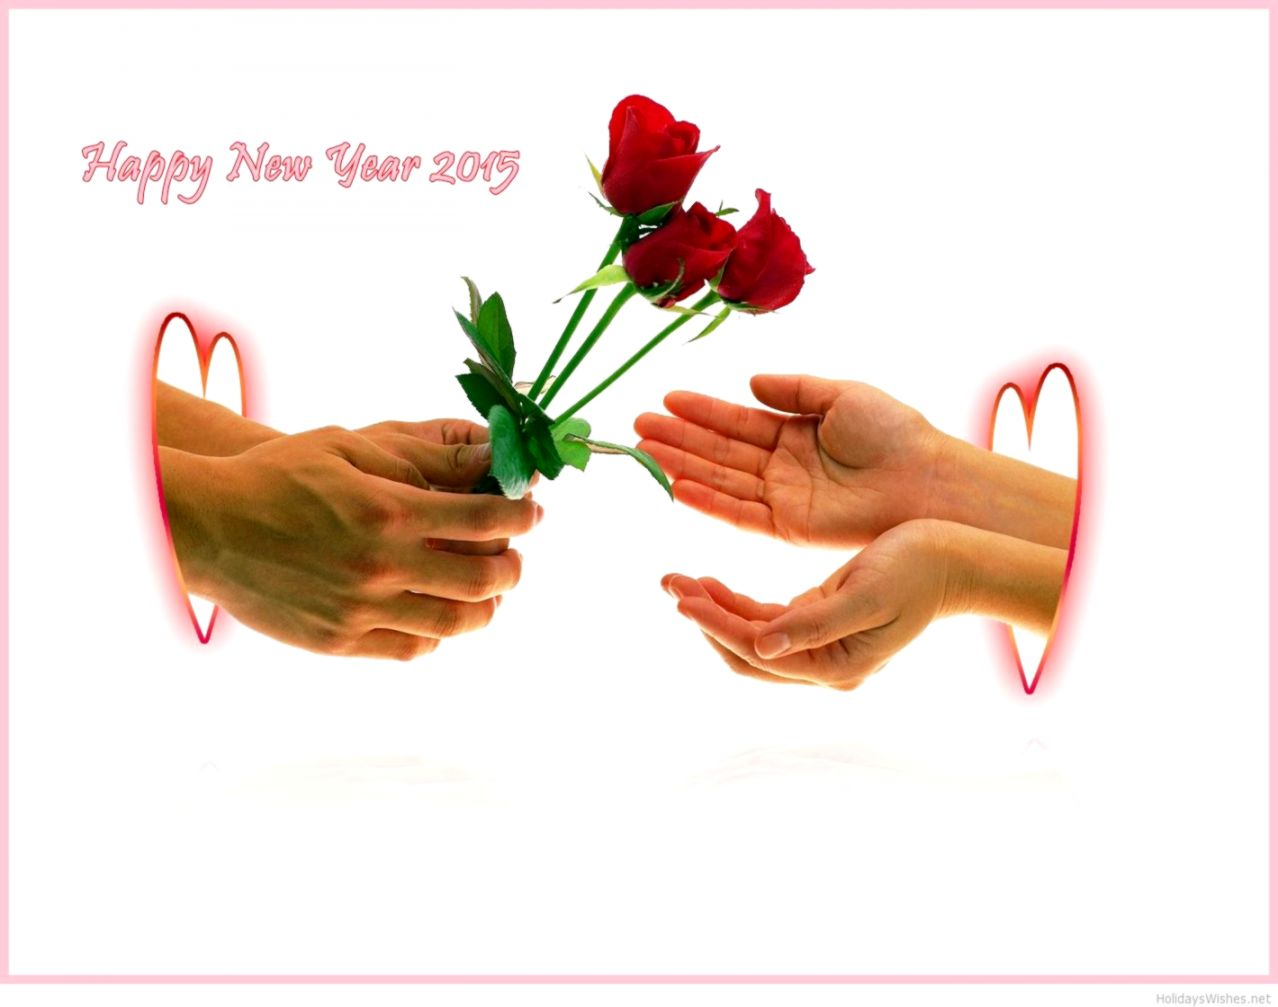 Happy New Year Love Free Wallpaper  HD Wallpapers Gallery